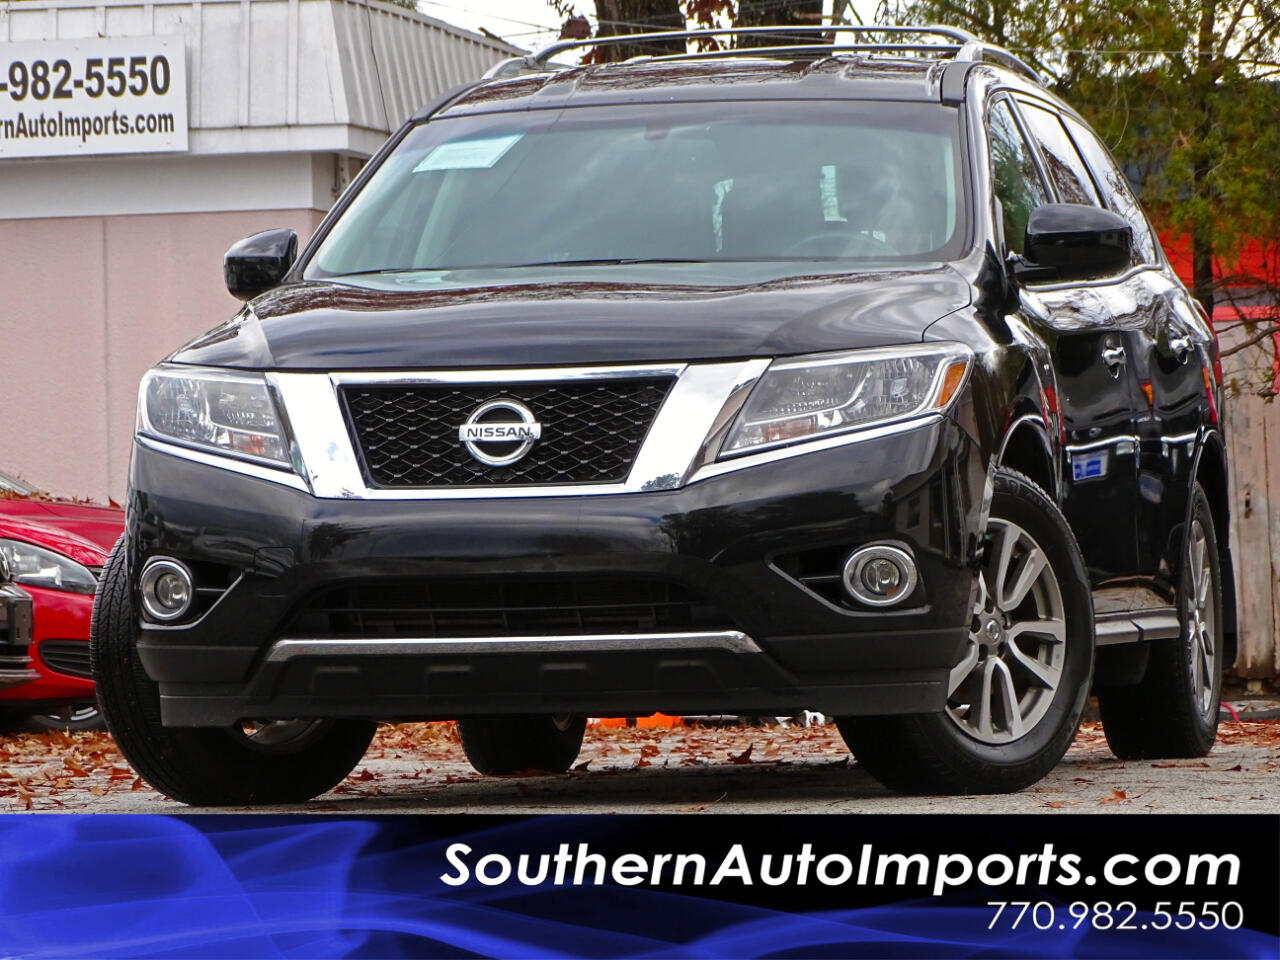 2015 Nissan Pathfinder SV w/Back up Camera 3RD Row Seats